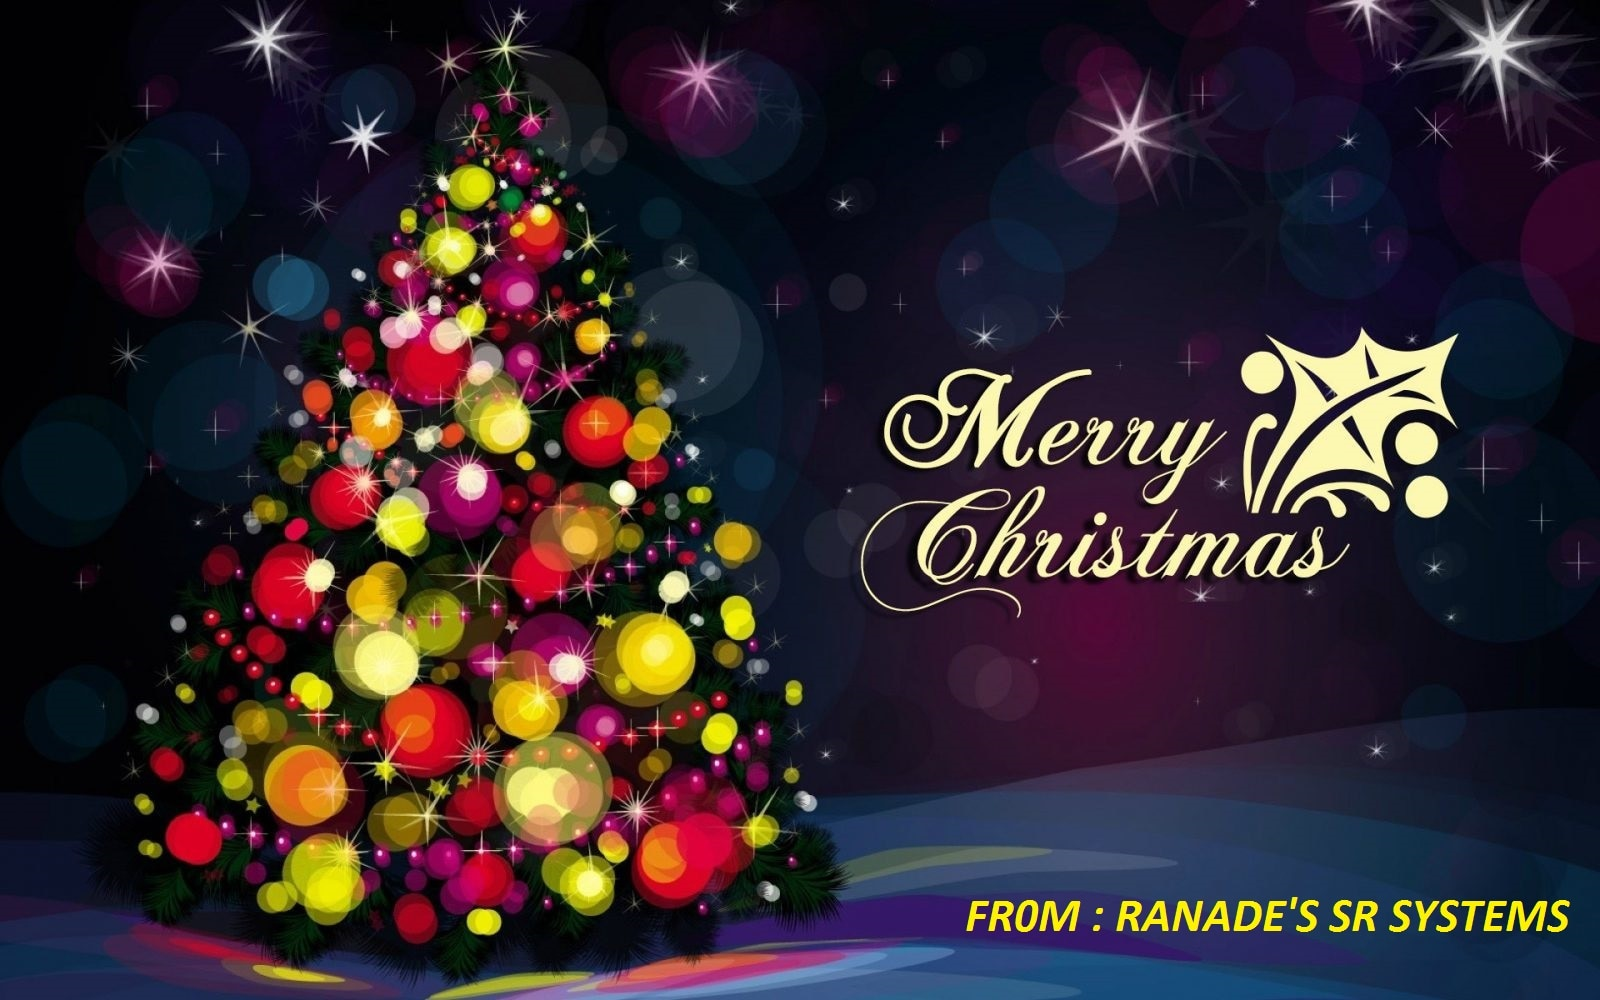 RANADE'S SR SYSTEMS WISHES YOU ALL MERRY CHRISTMAS.